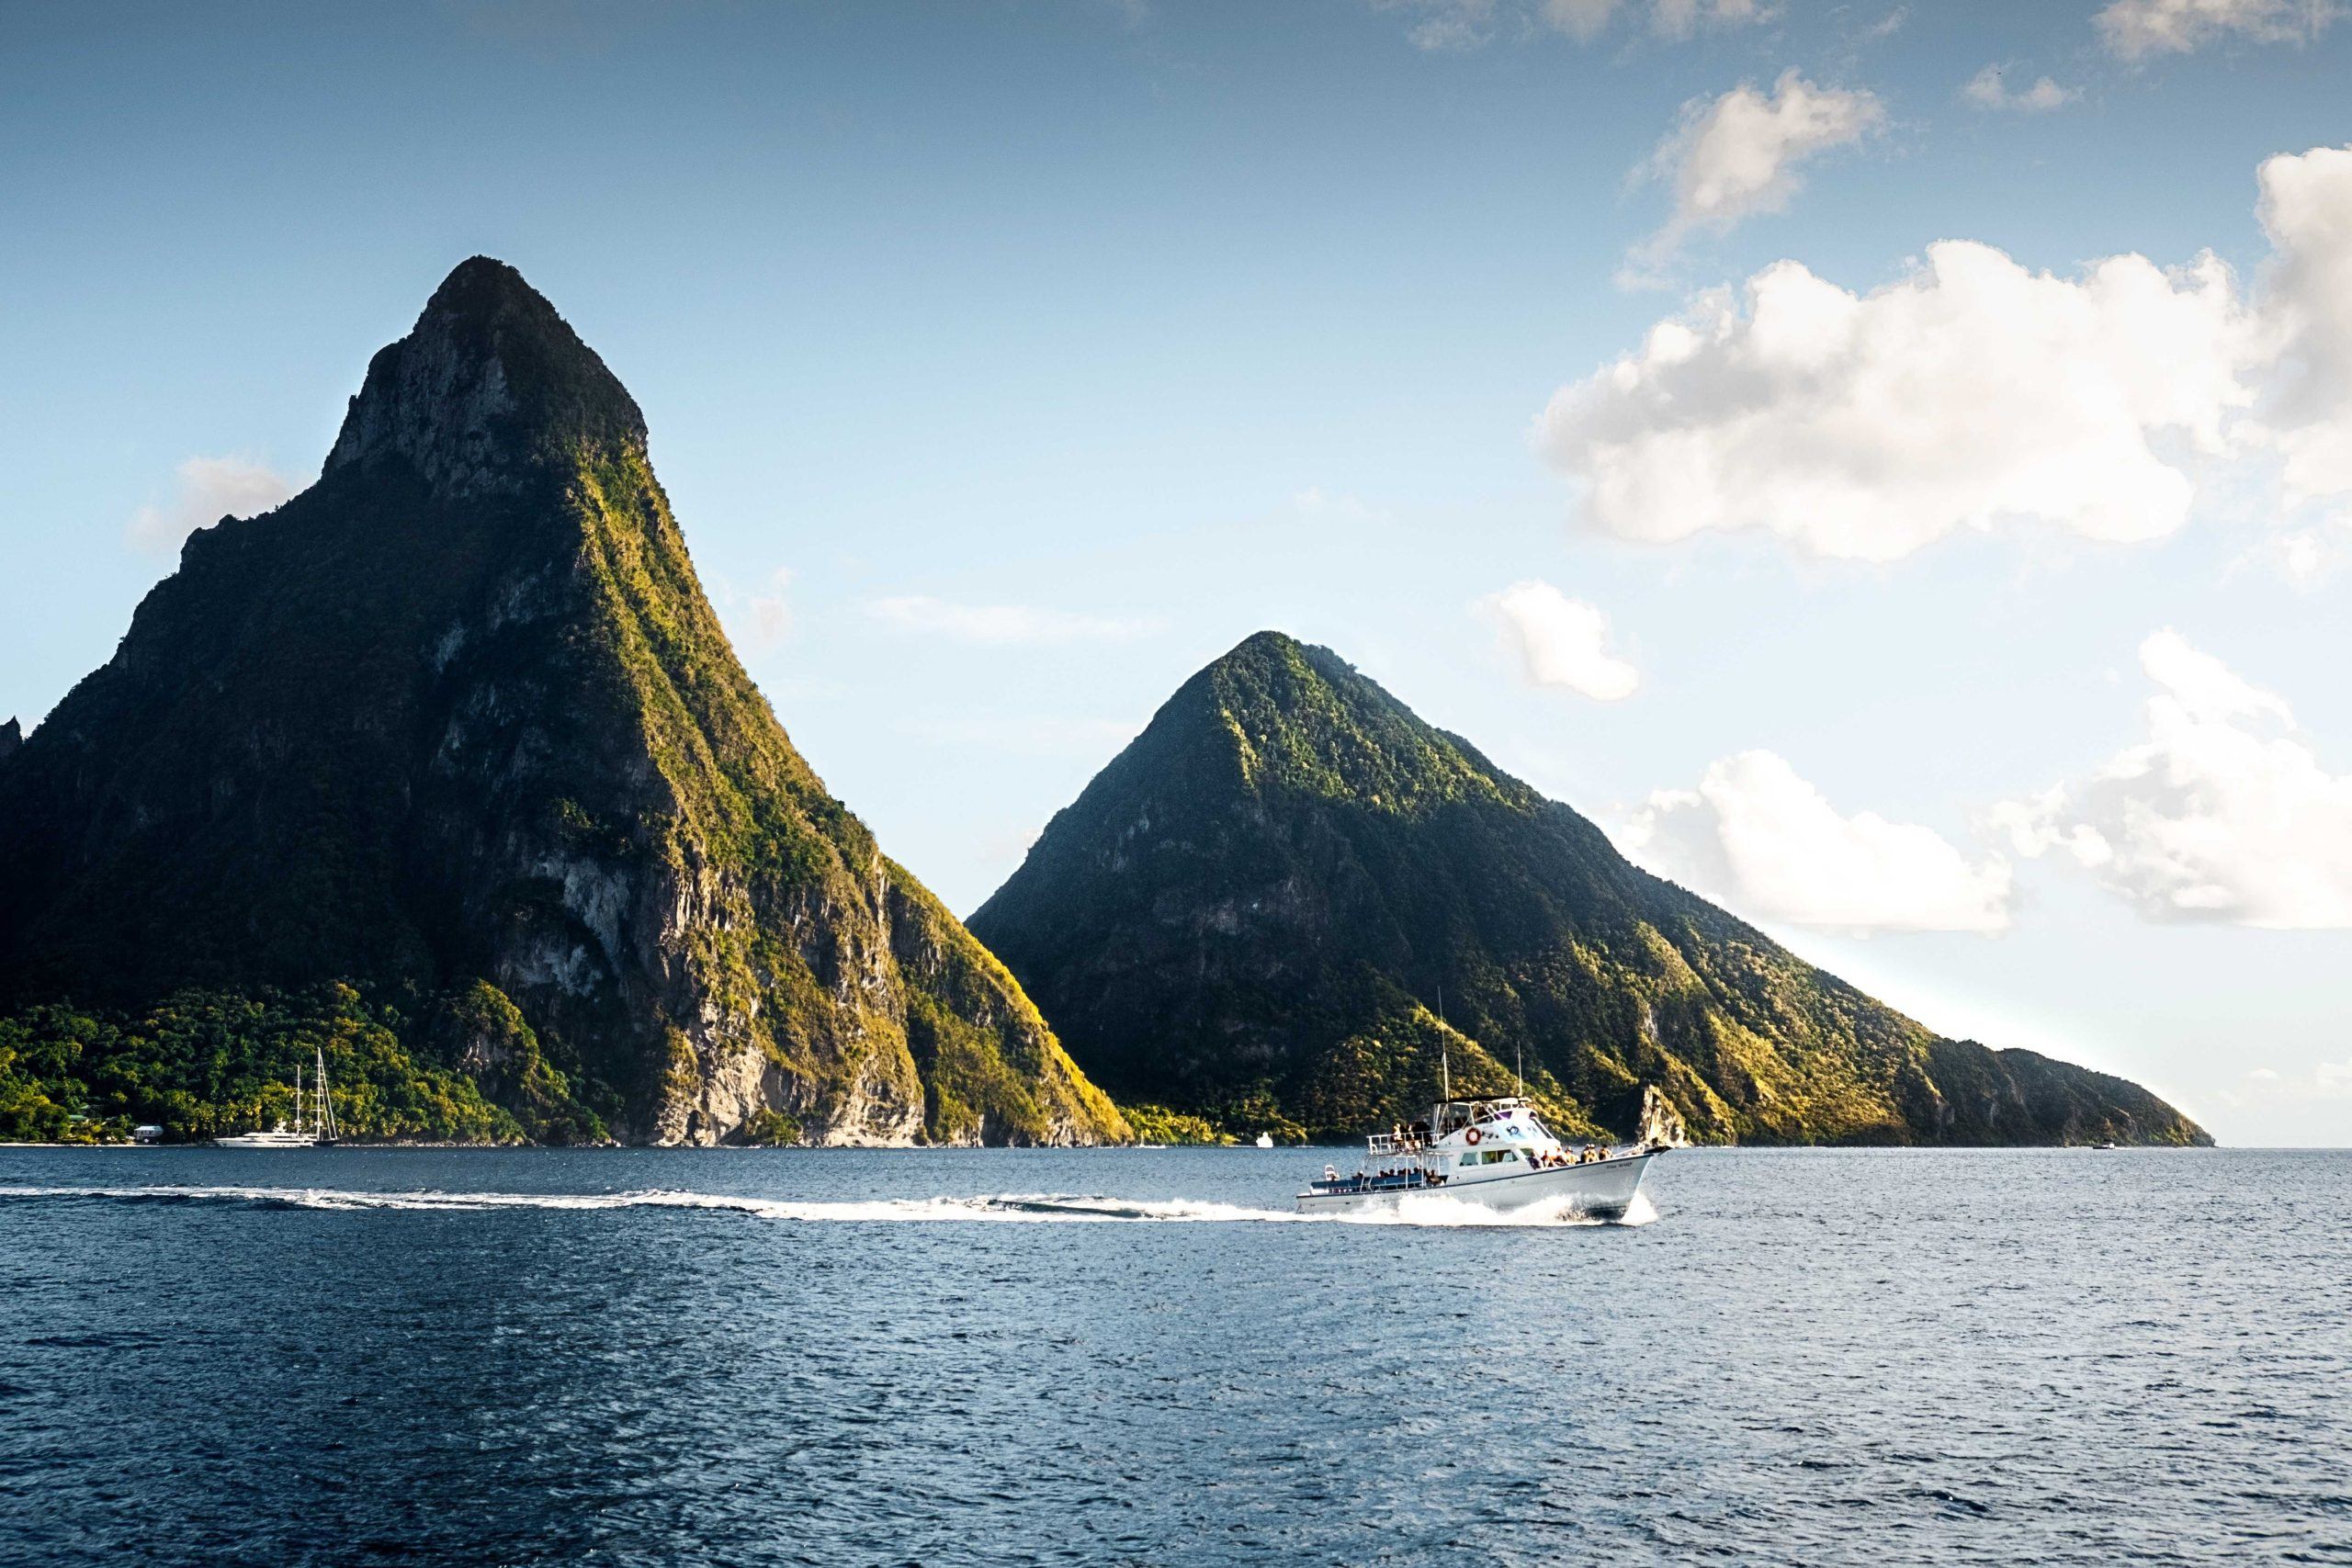 The Piton peaks with a boat in the water